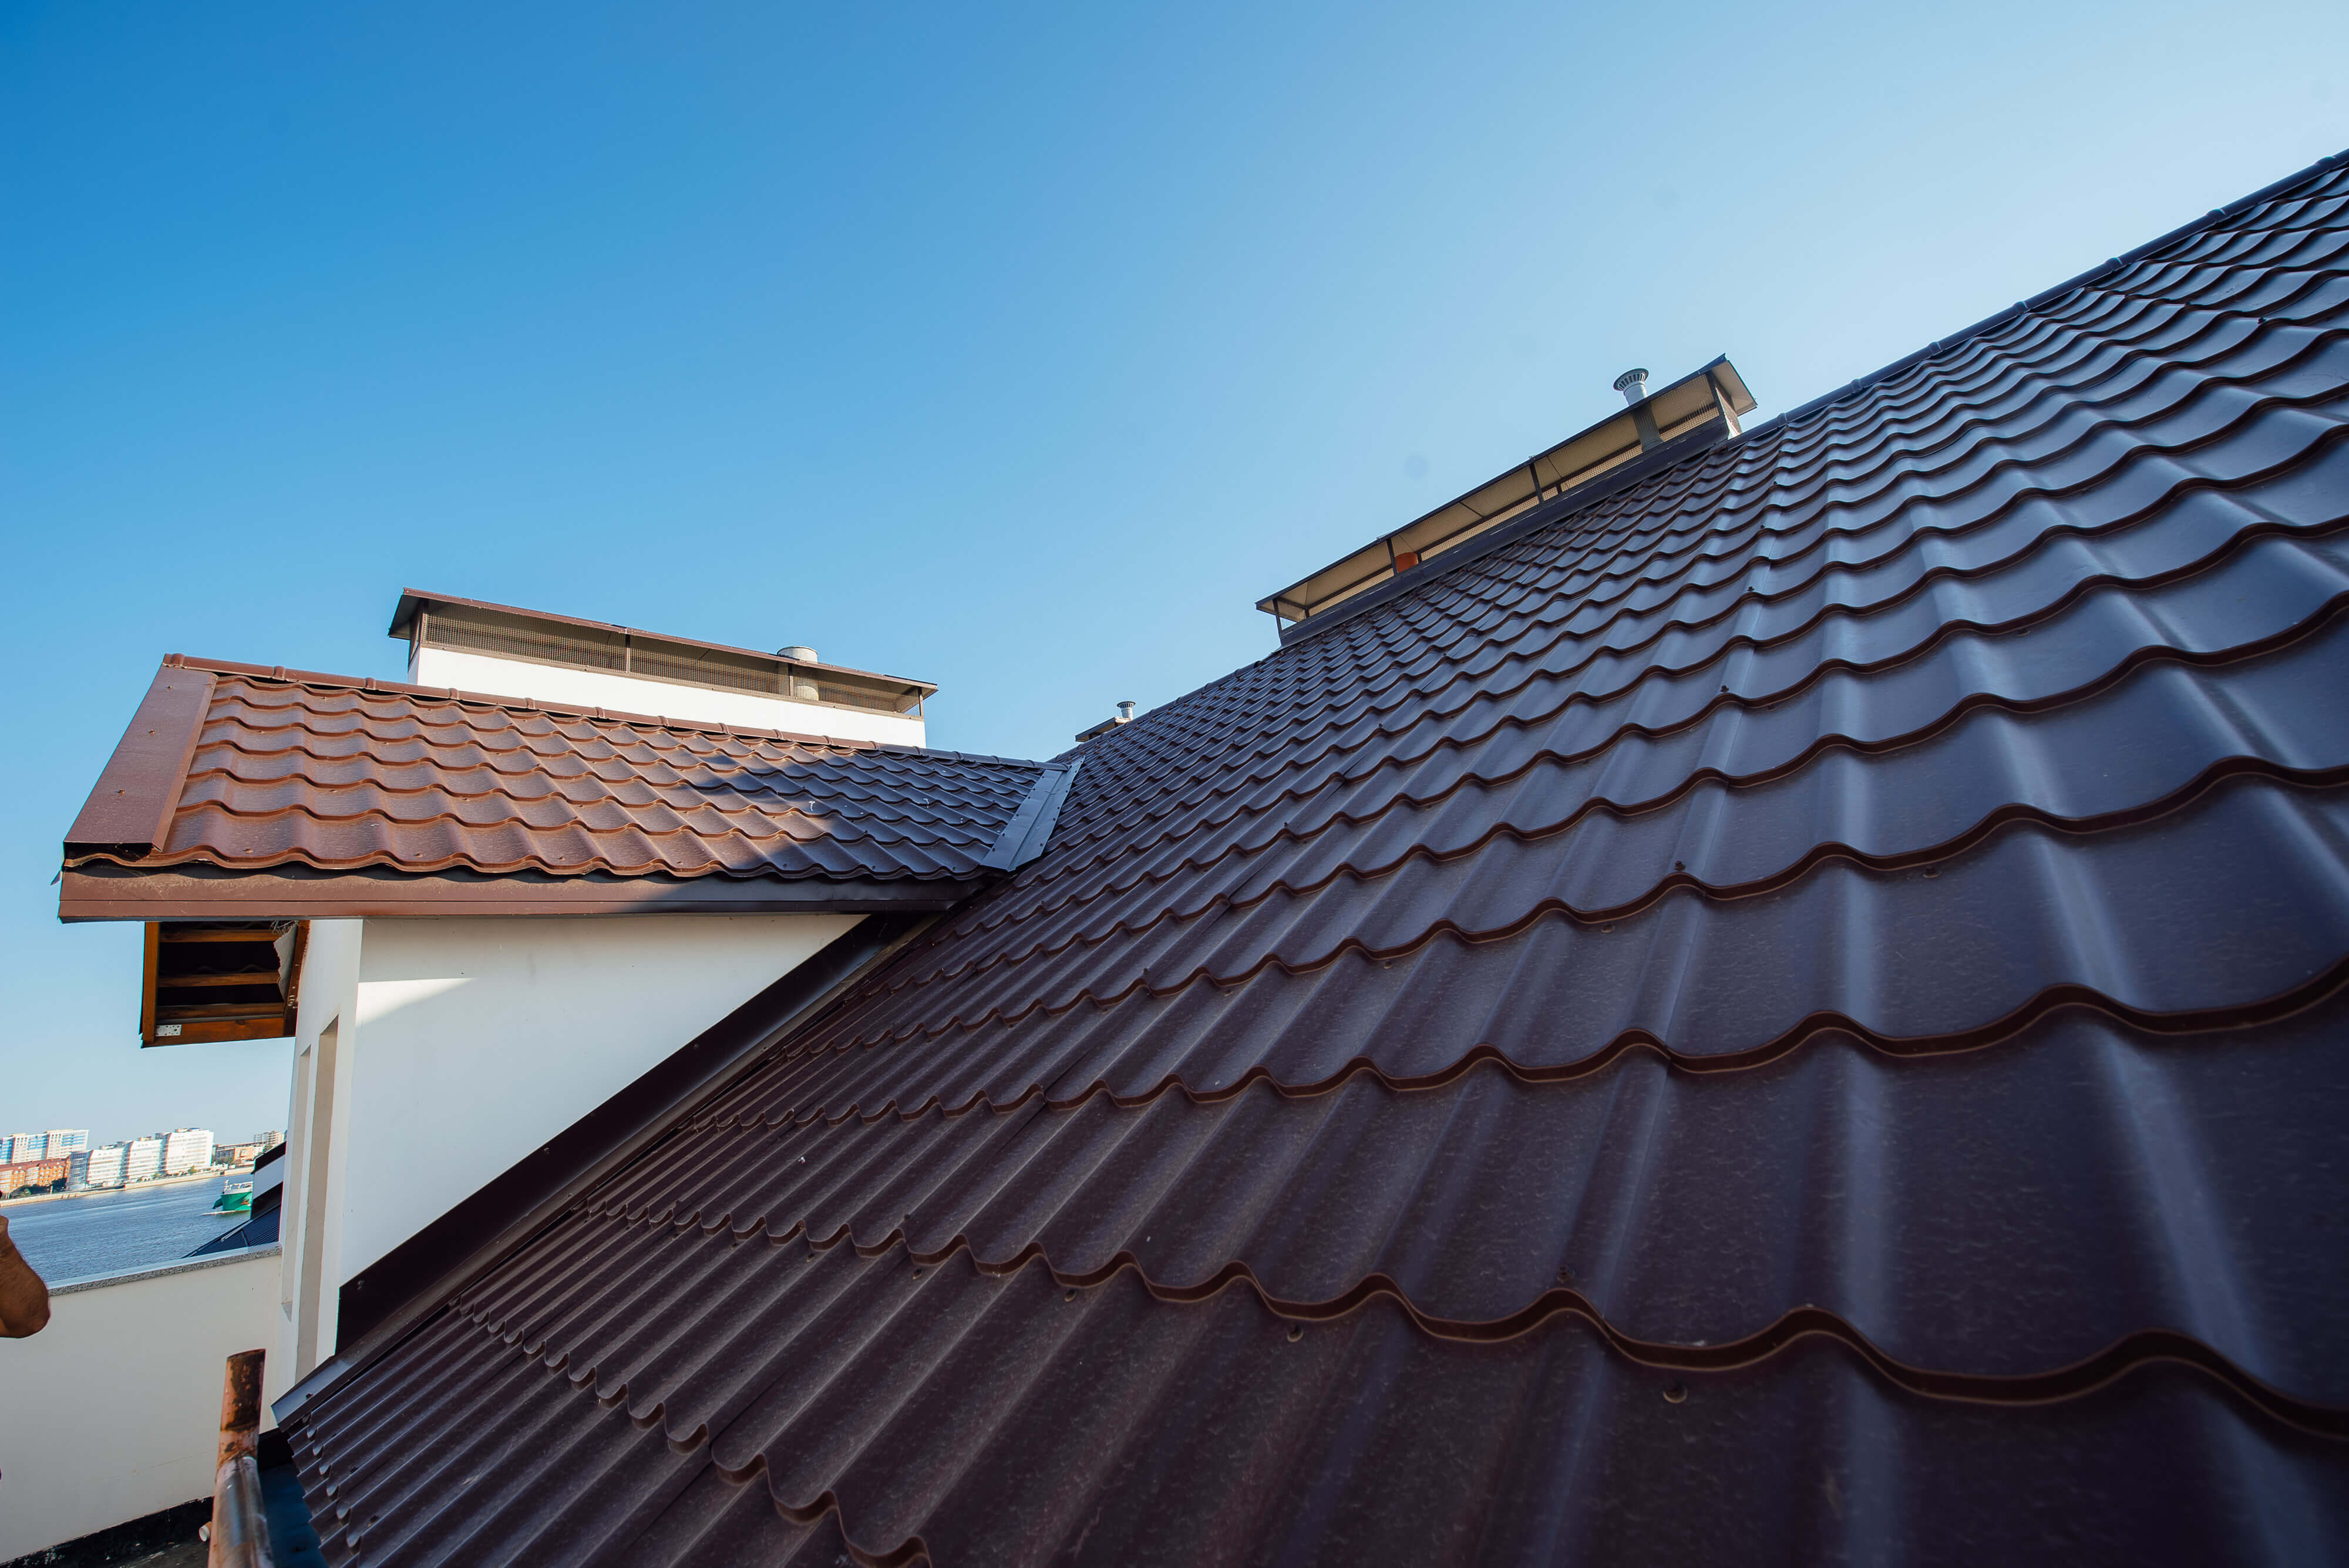 tile-roof-two-story-white-cottage